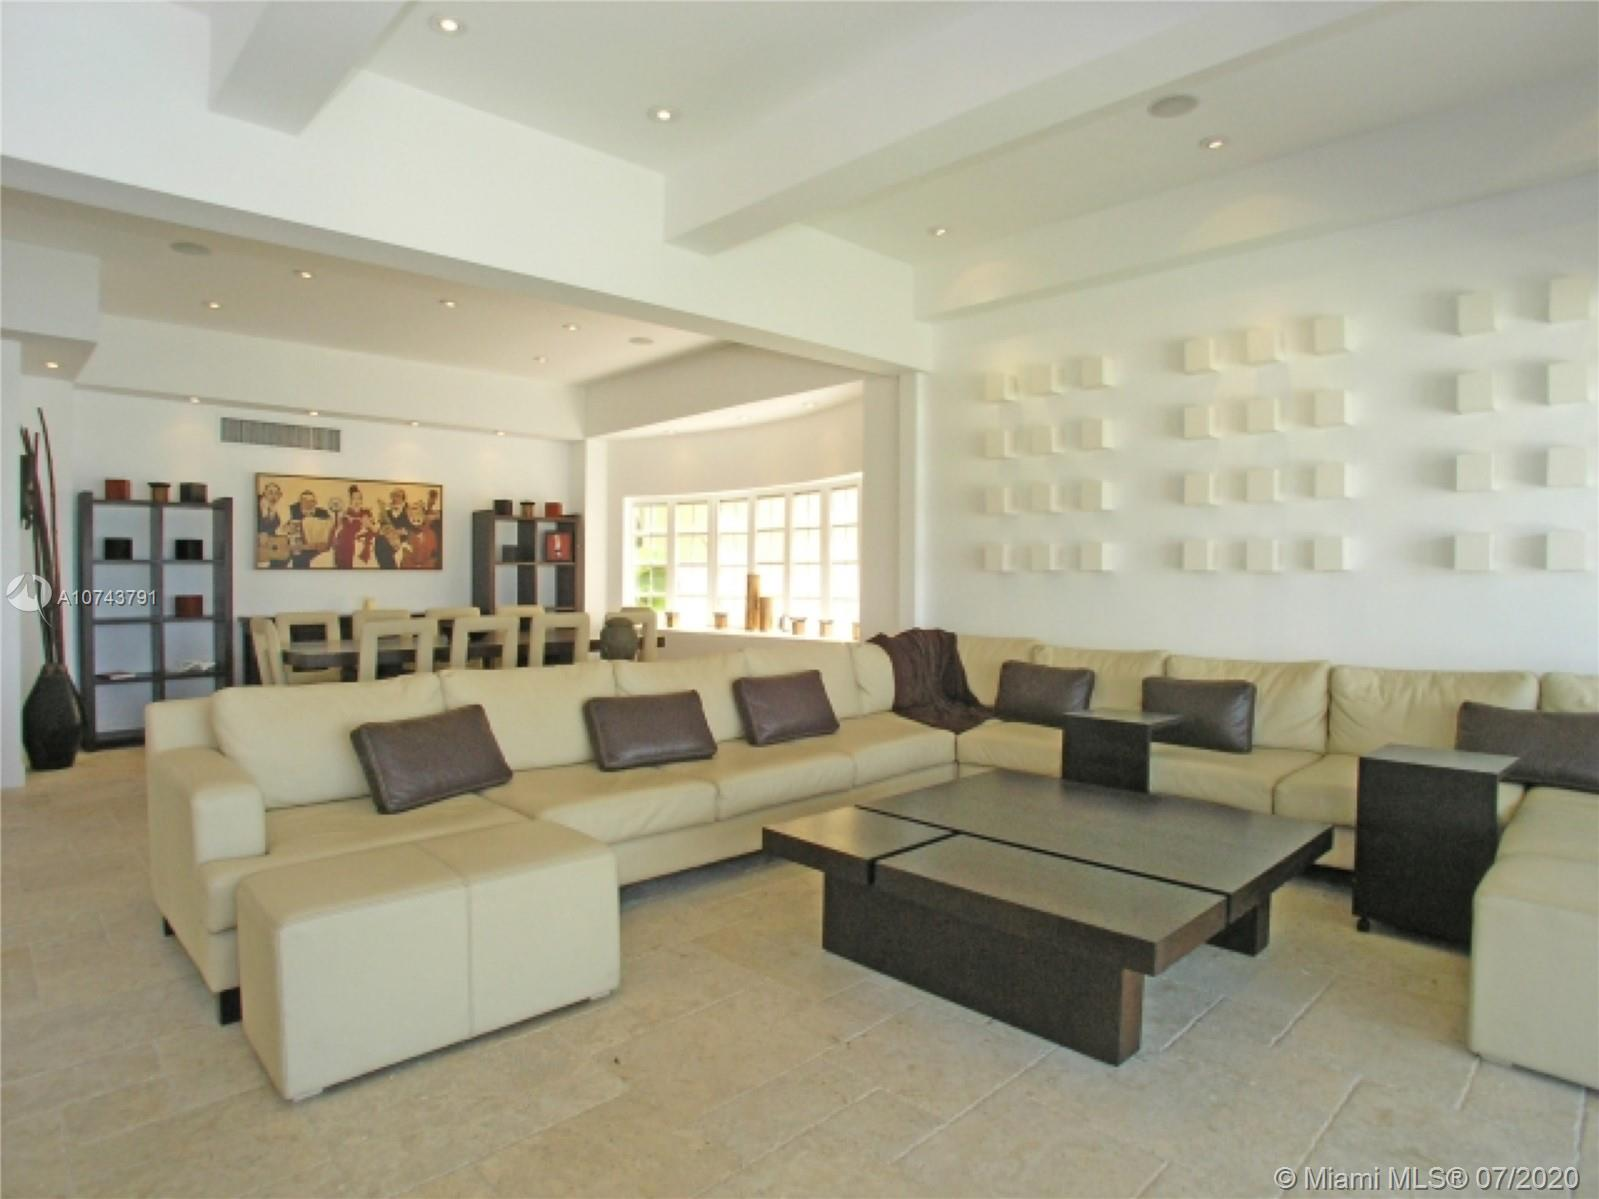 224 S coconut ln- miami-beach-fl-33139-a10743791-Pic11